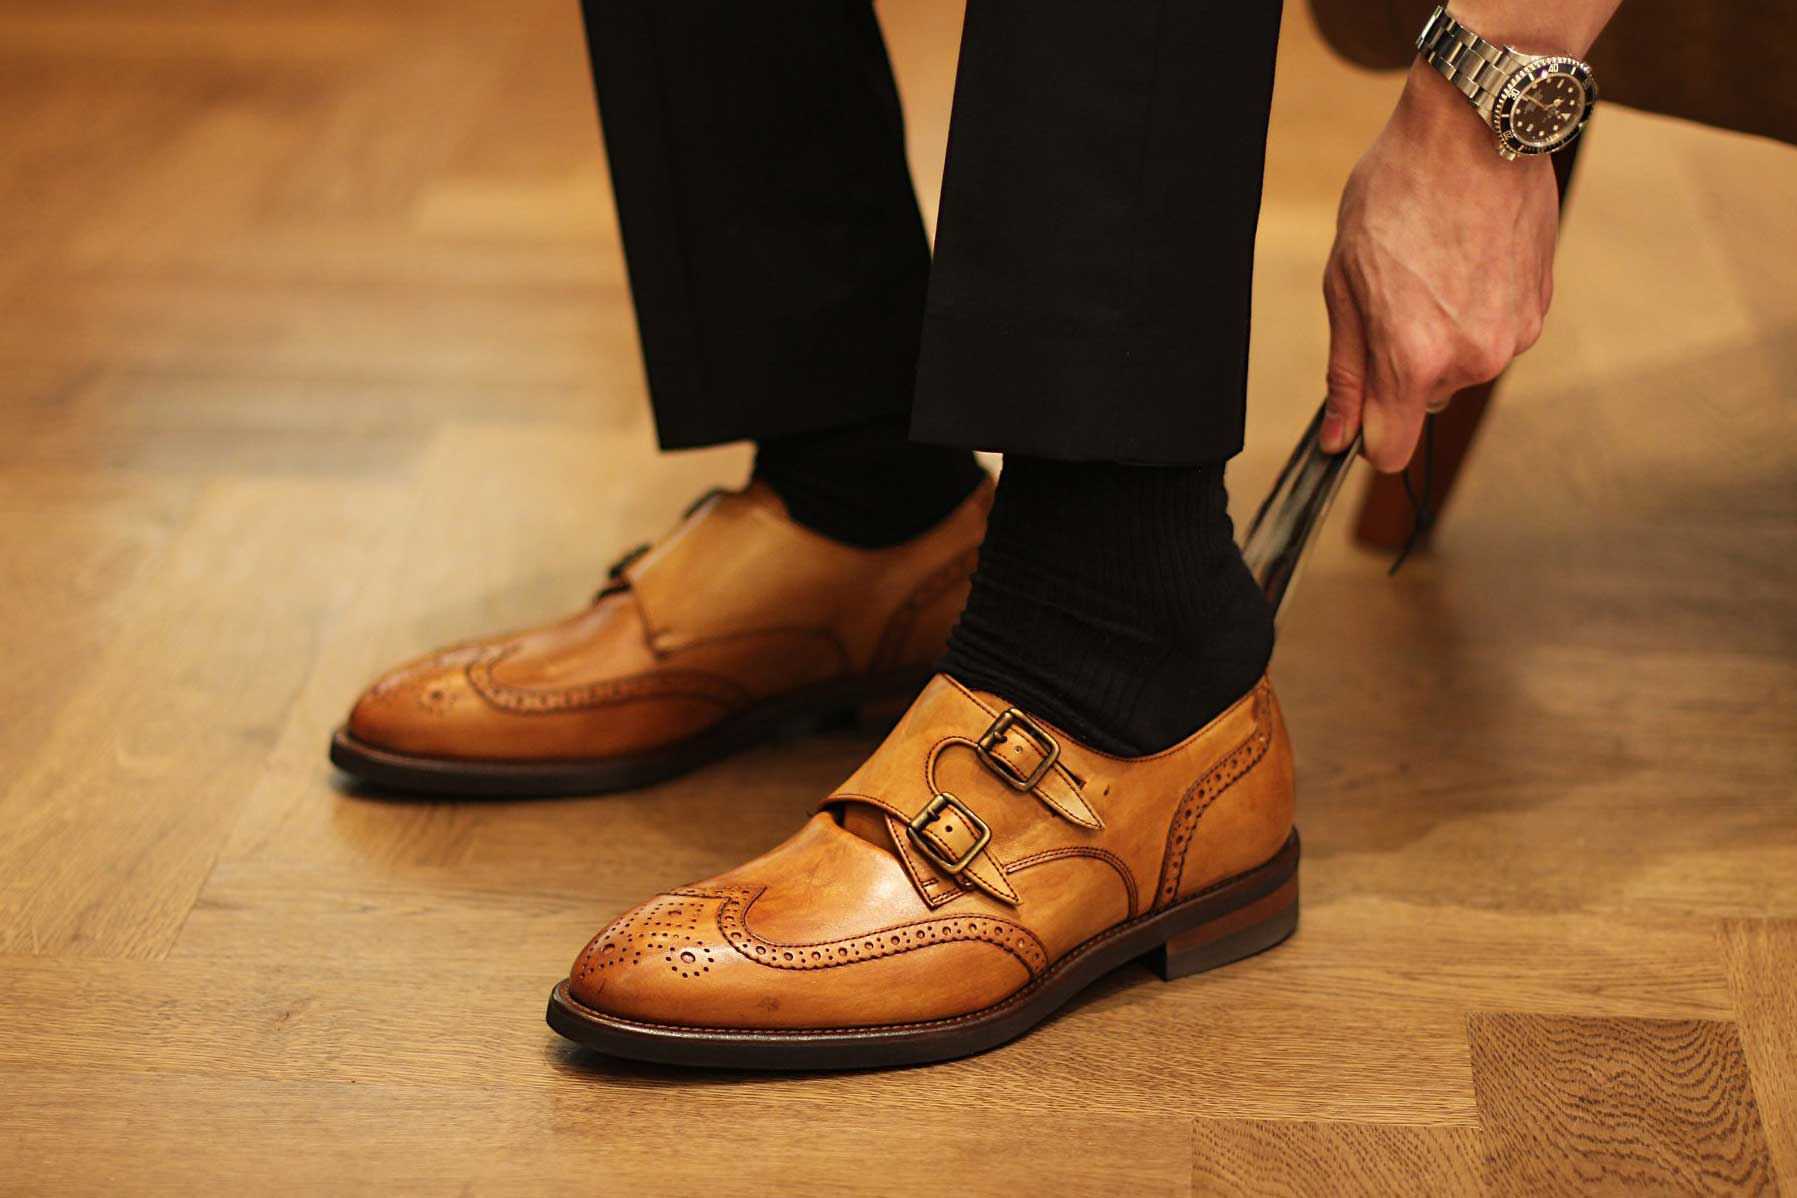 Calzoleria Toscana Double Monk Wingtip Shoe